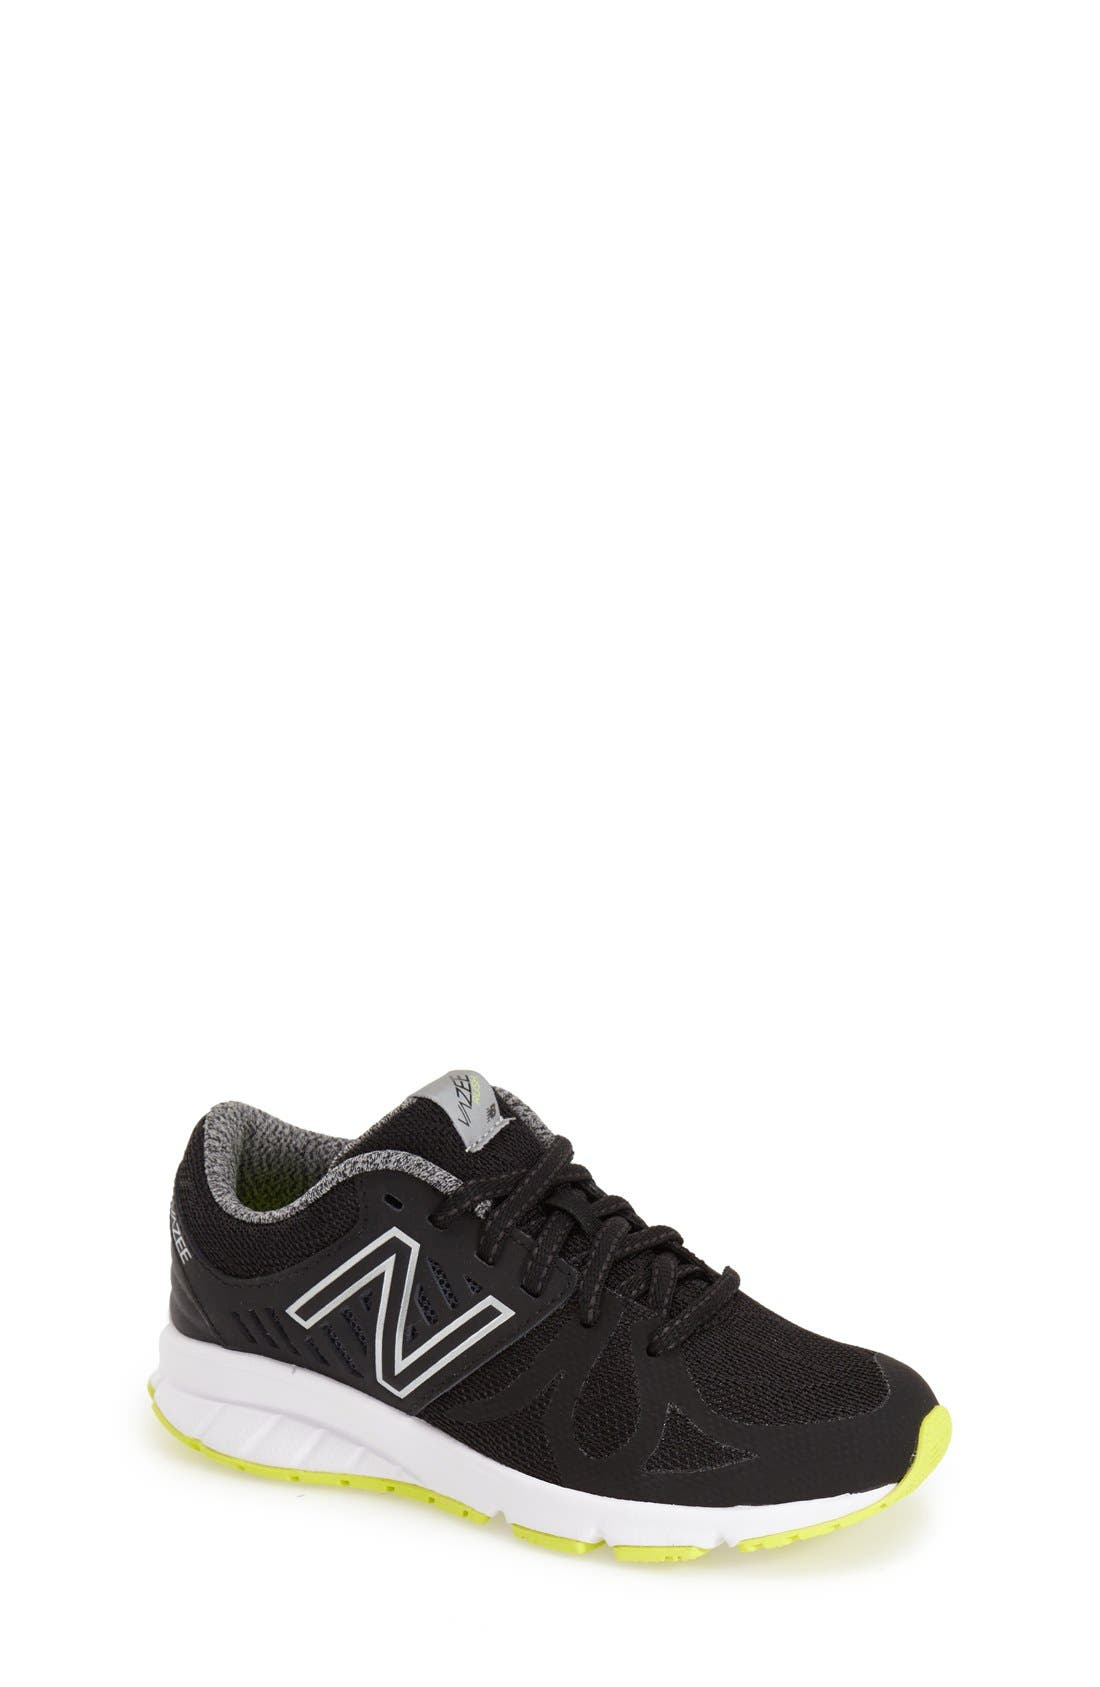 NEW BALANCE 200 Vazee Athletic Shoe